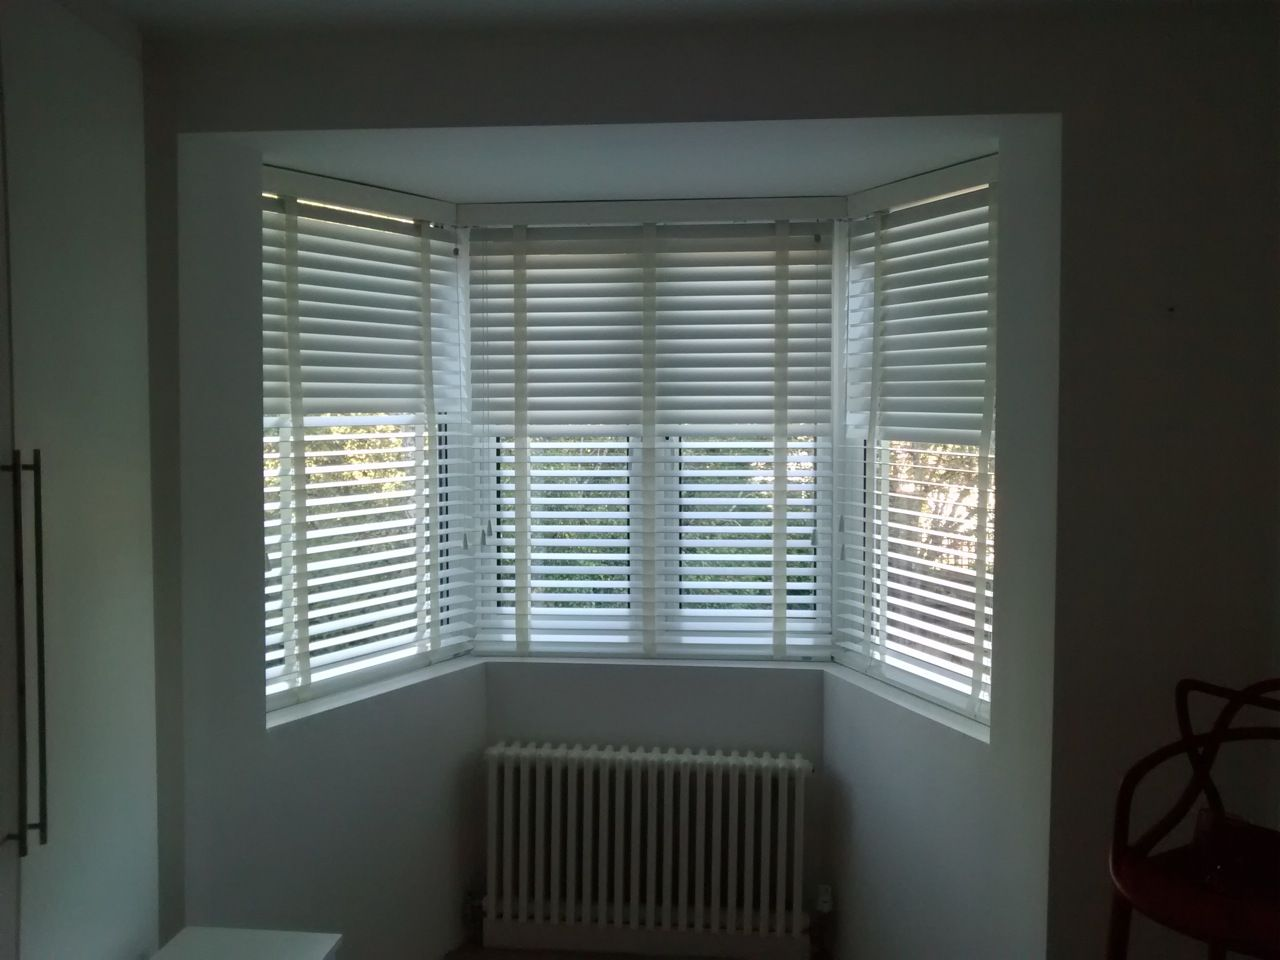 Bay windows blinds - Chalk Venetians With Matching Tapes In Bay Window Http Www Theblindshop